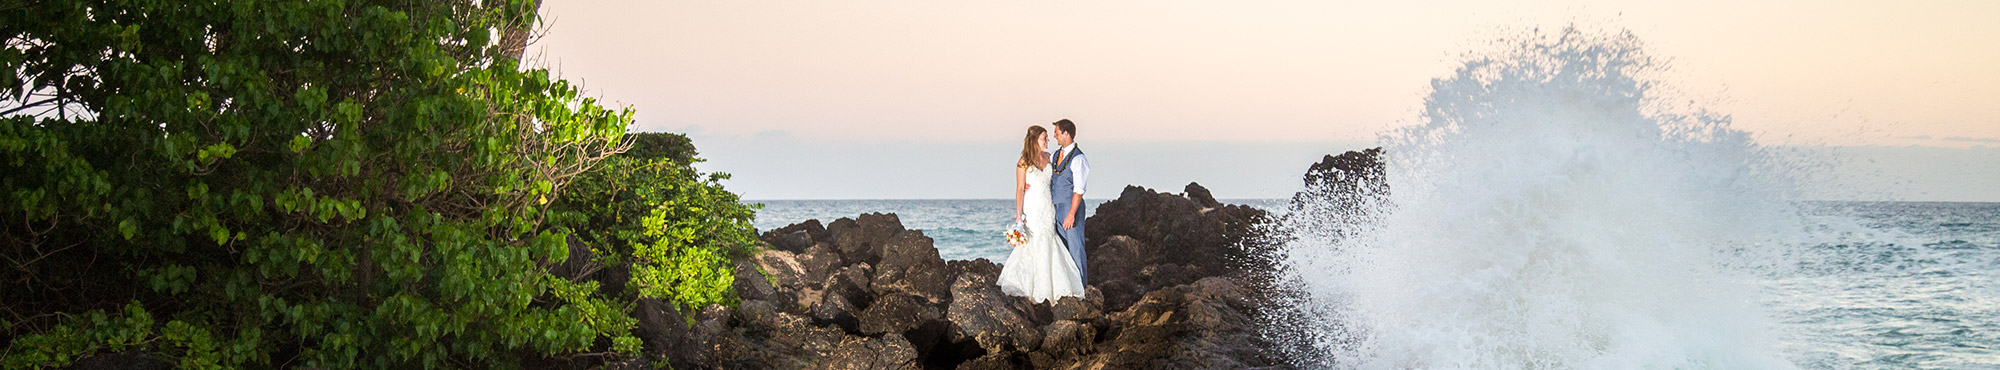 Maui weddings by Precious Maui Weddings